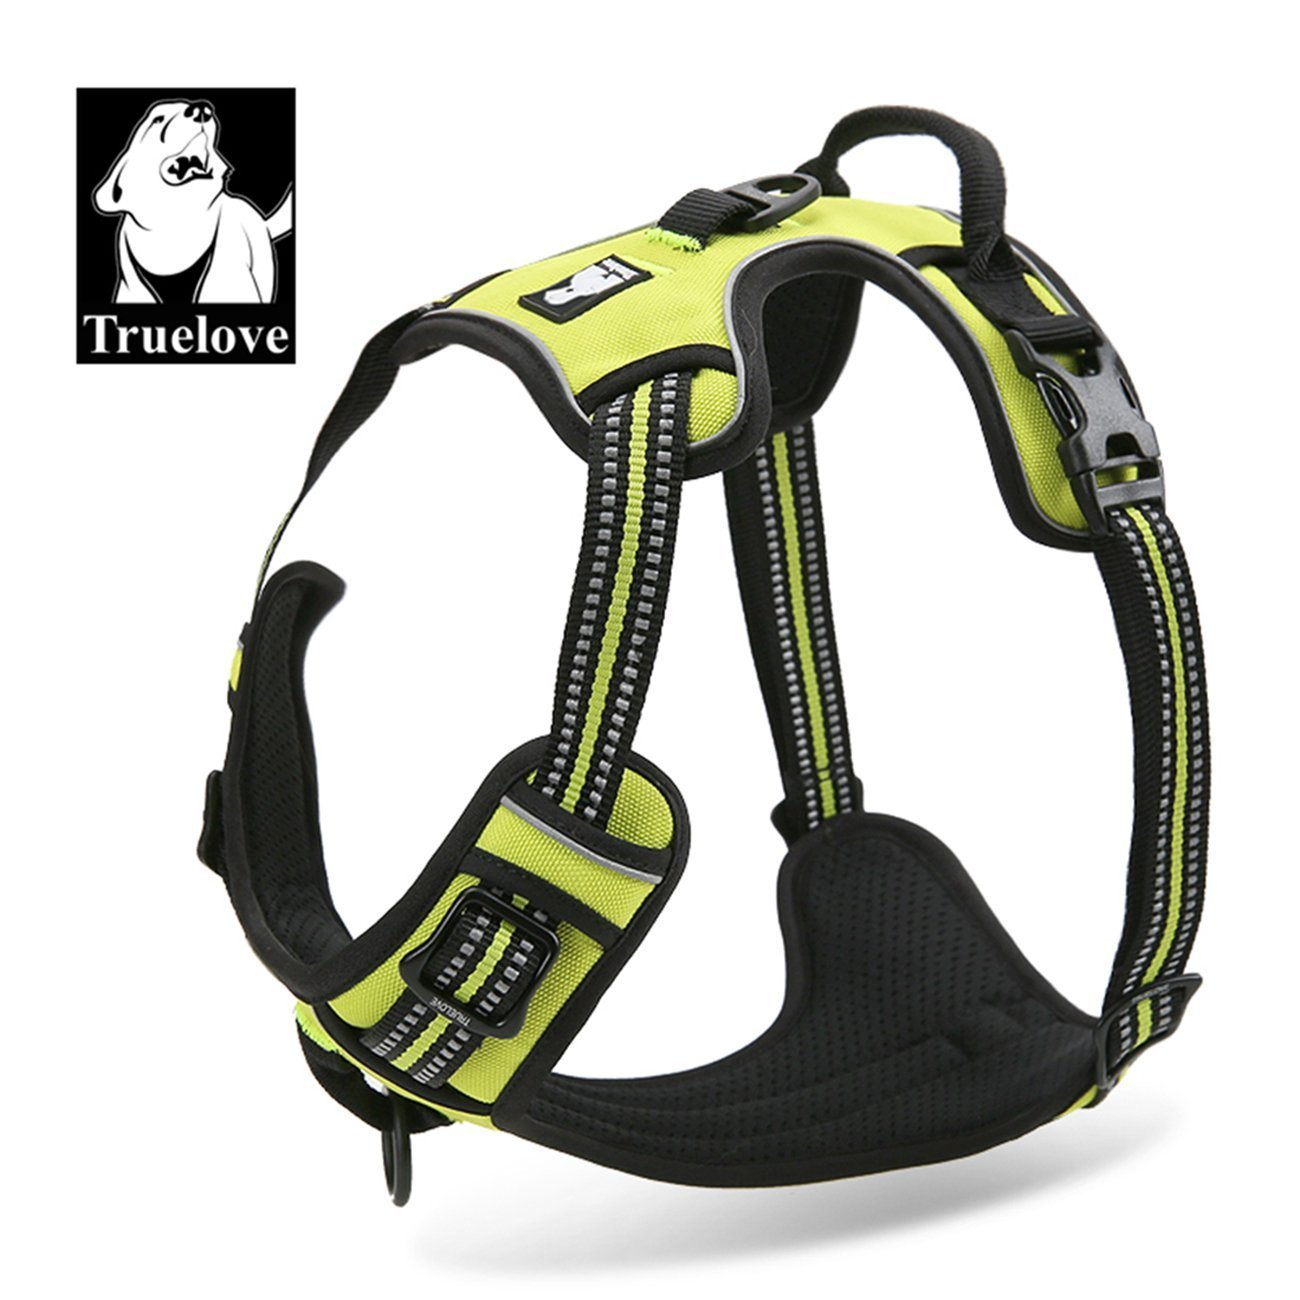 Truelove Comfort Control Dog Harness Adjustable Puppy Walk Harness Reflective Vest Anti-Pull Safety Vest TLH5651